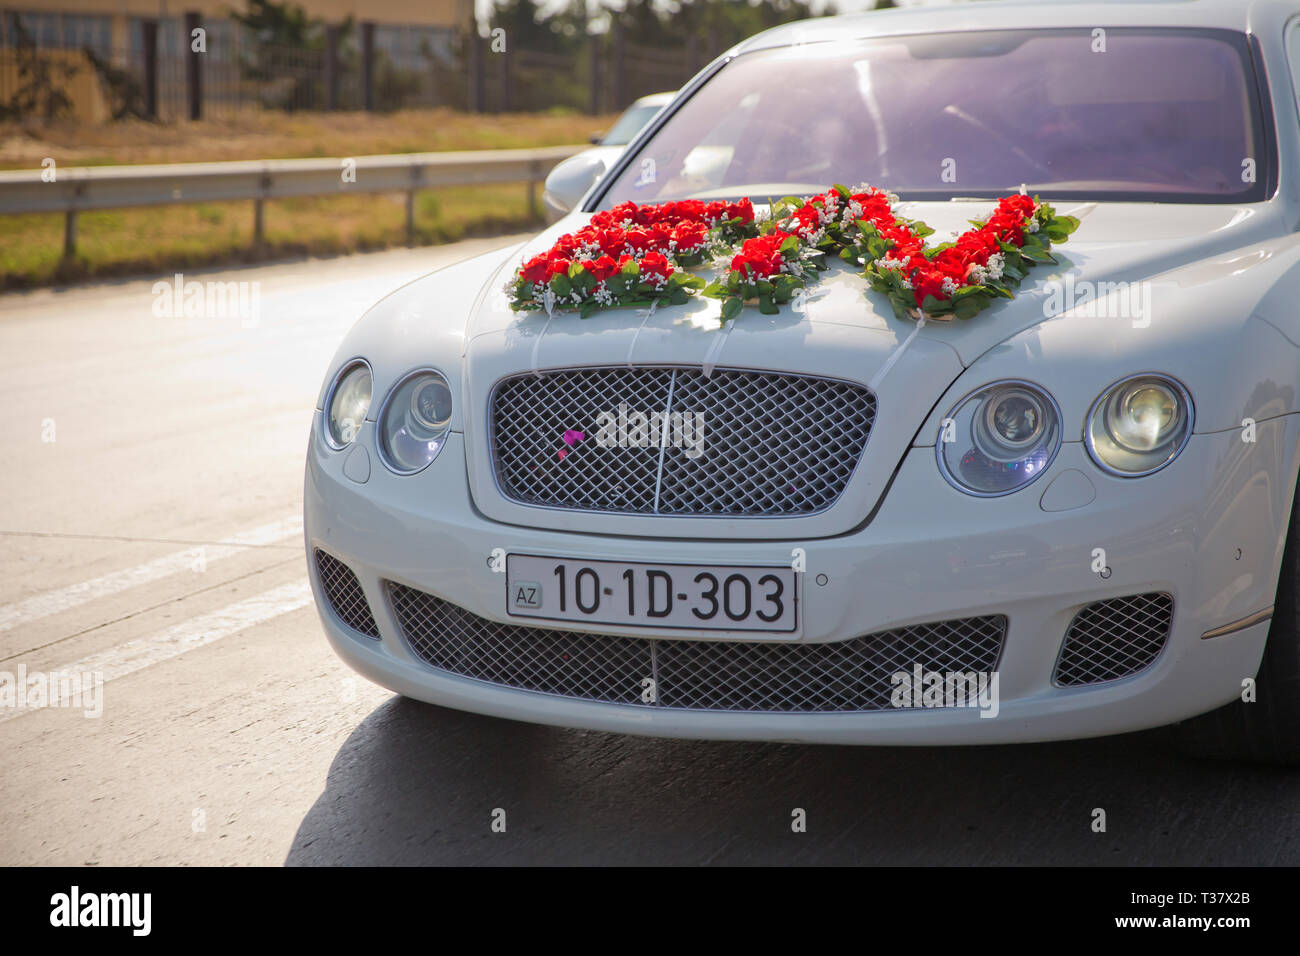 Red And White Flowers Bouquet Closeup Image Of Wedding Car